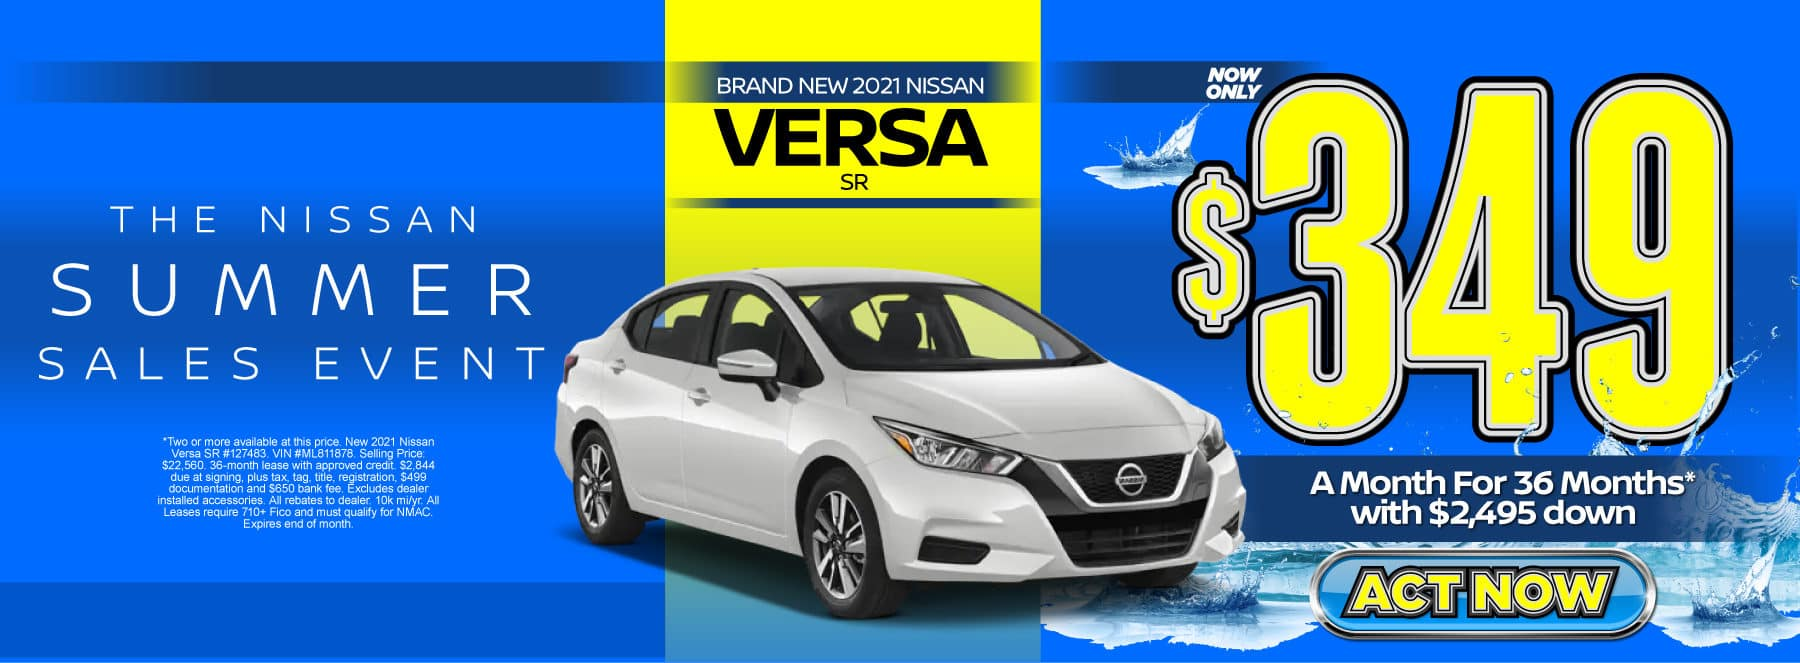 New 2021 Nissan Versa SR – Lease for $349/mo for 36 months with $2,495 Down* Act now.